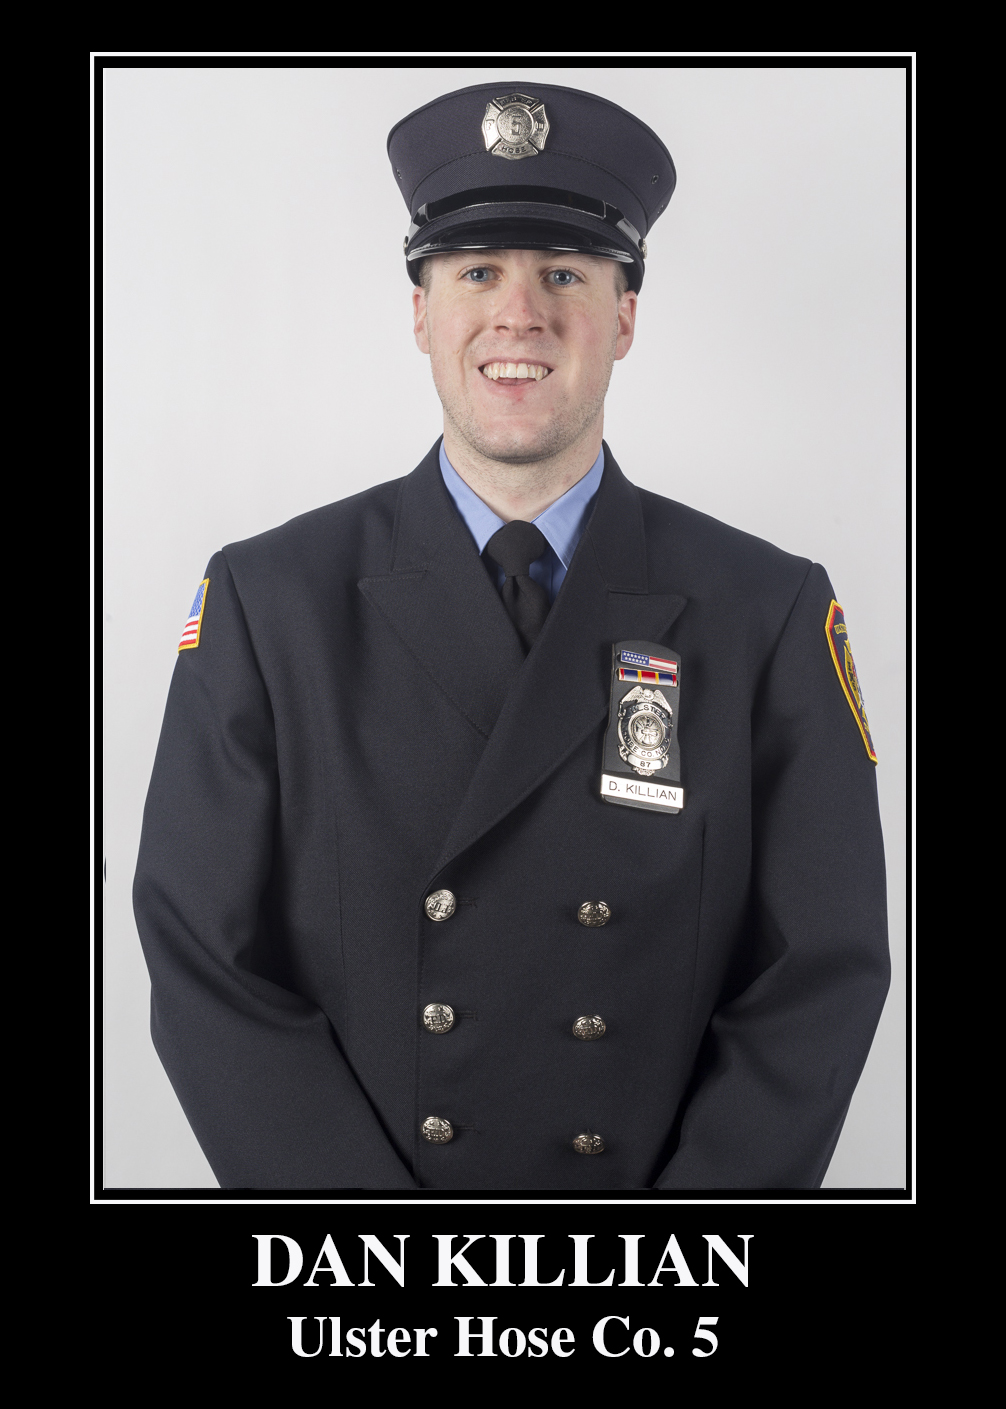 FF Daniel Killian